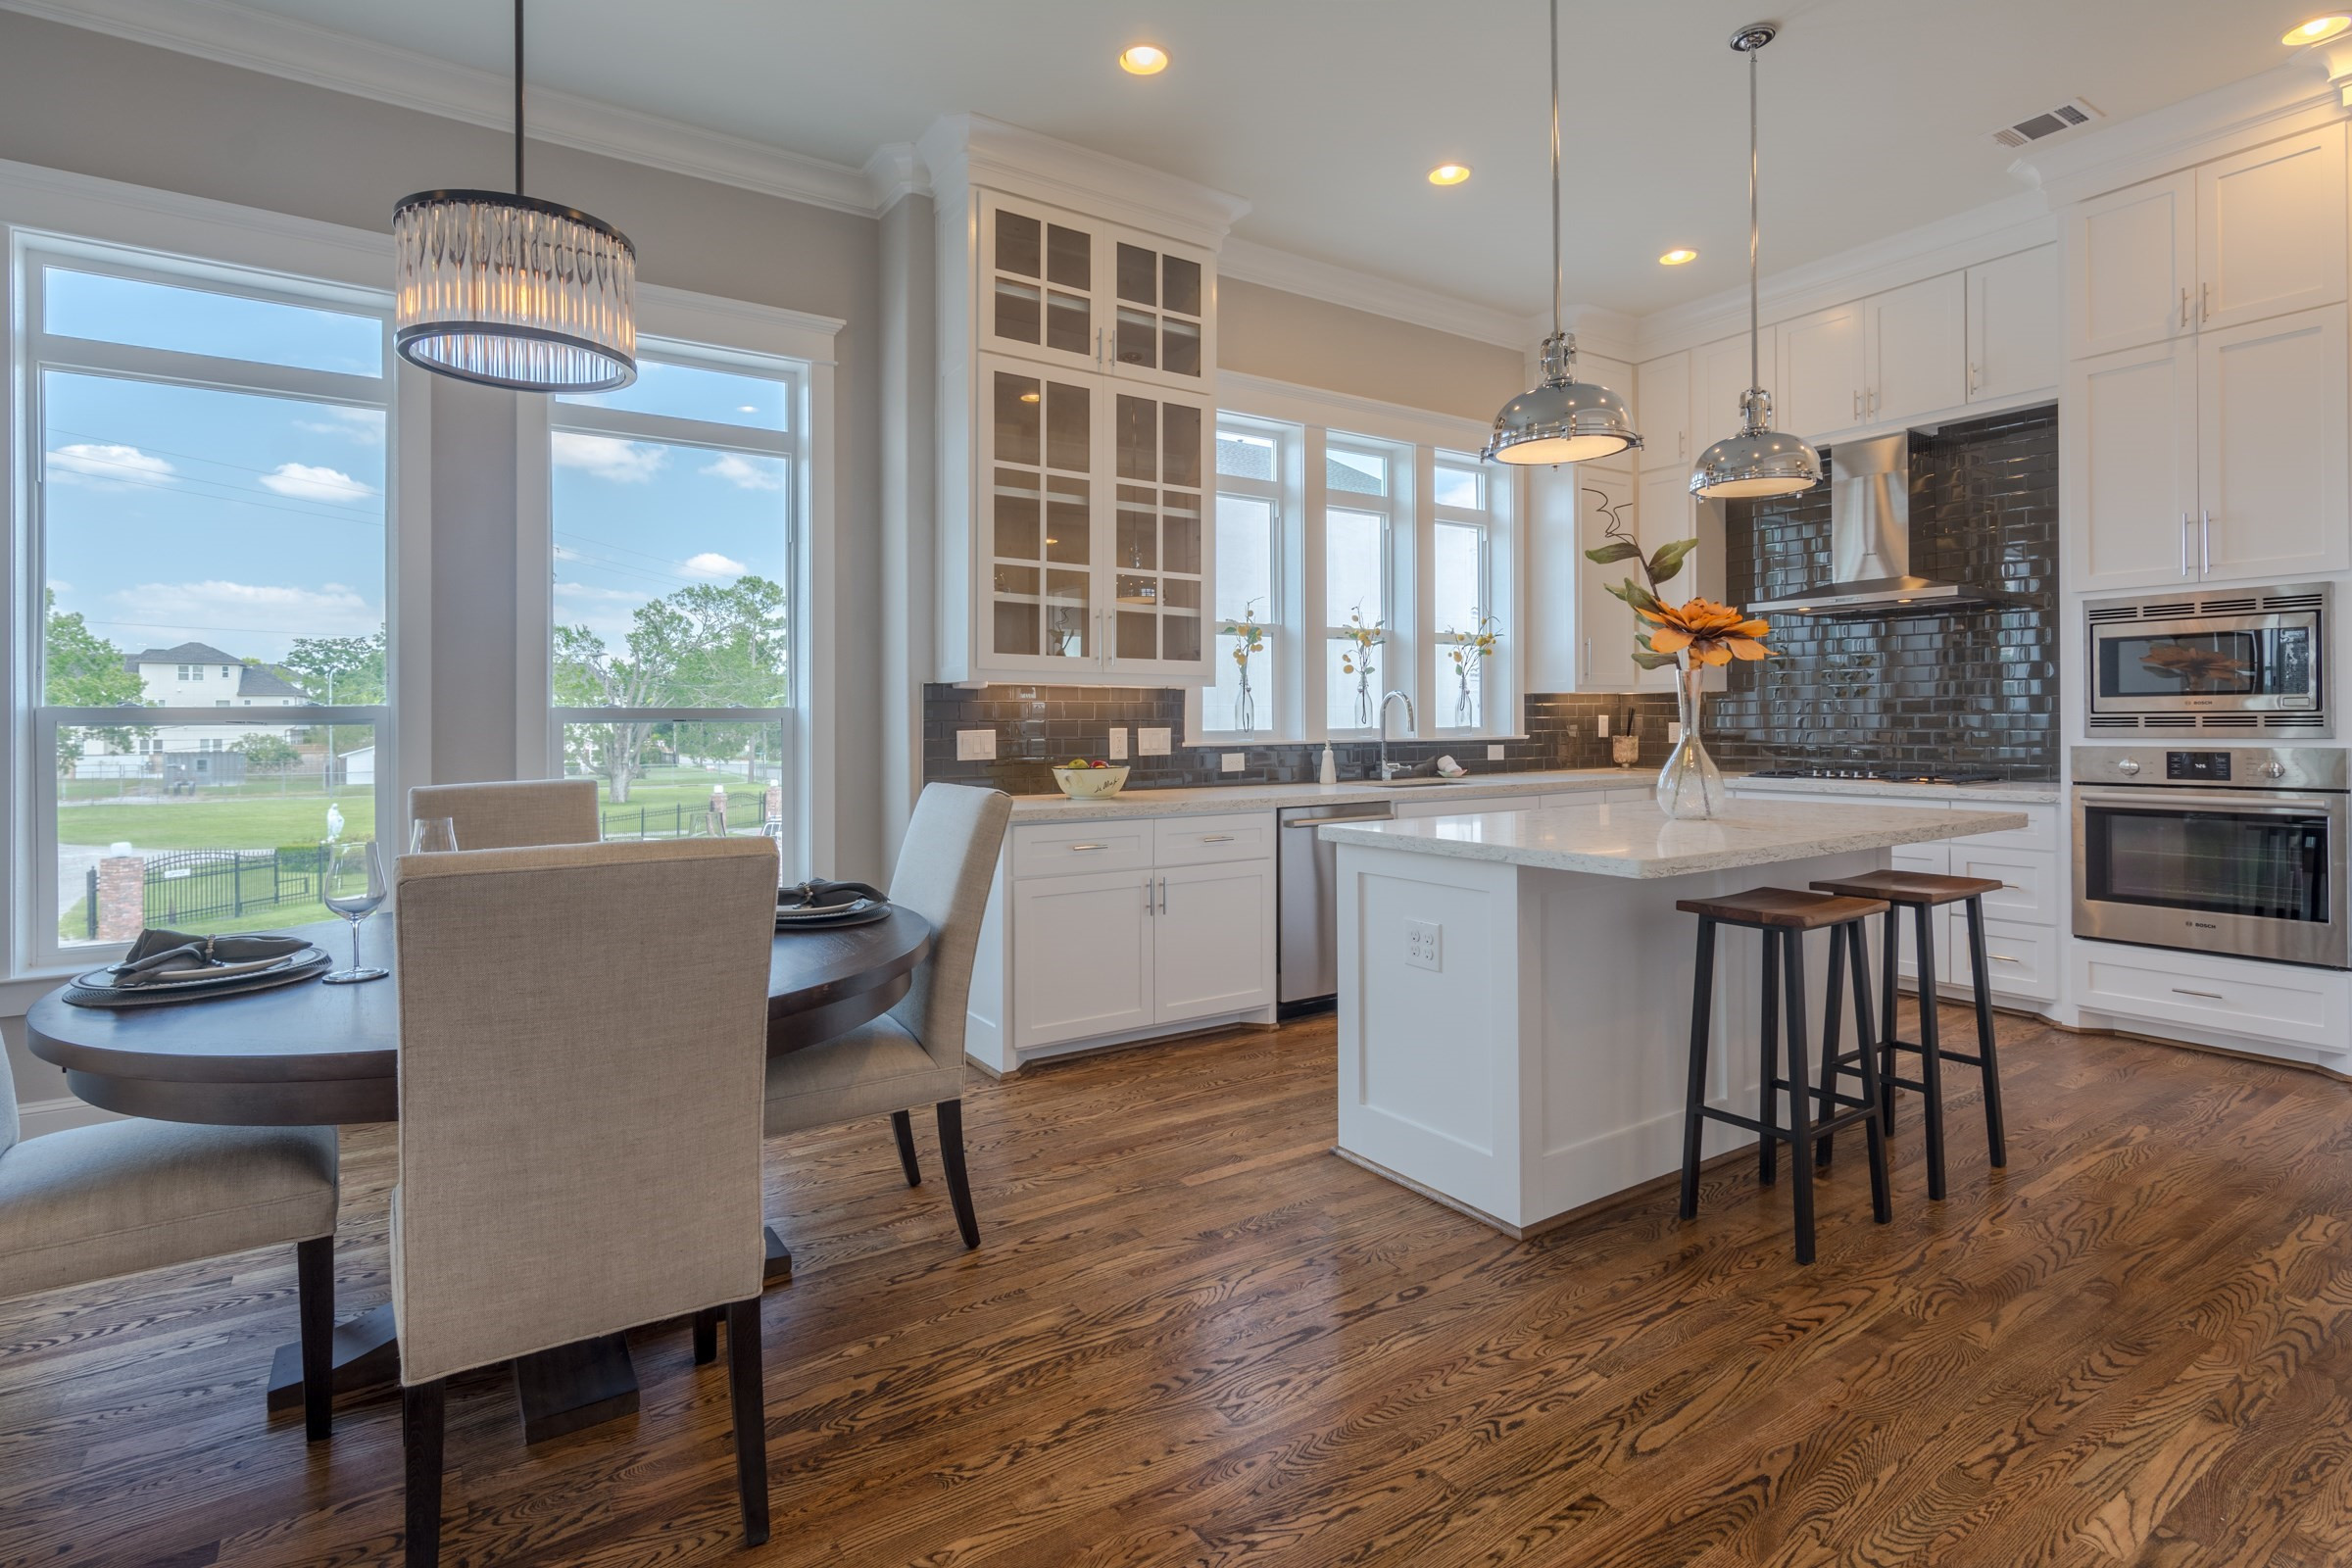 sims hardwood floors florence sc of search homes for sale homesmart fine properties pertaining to 012 014 37422353